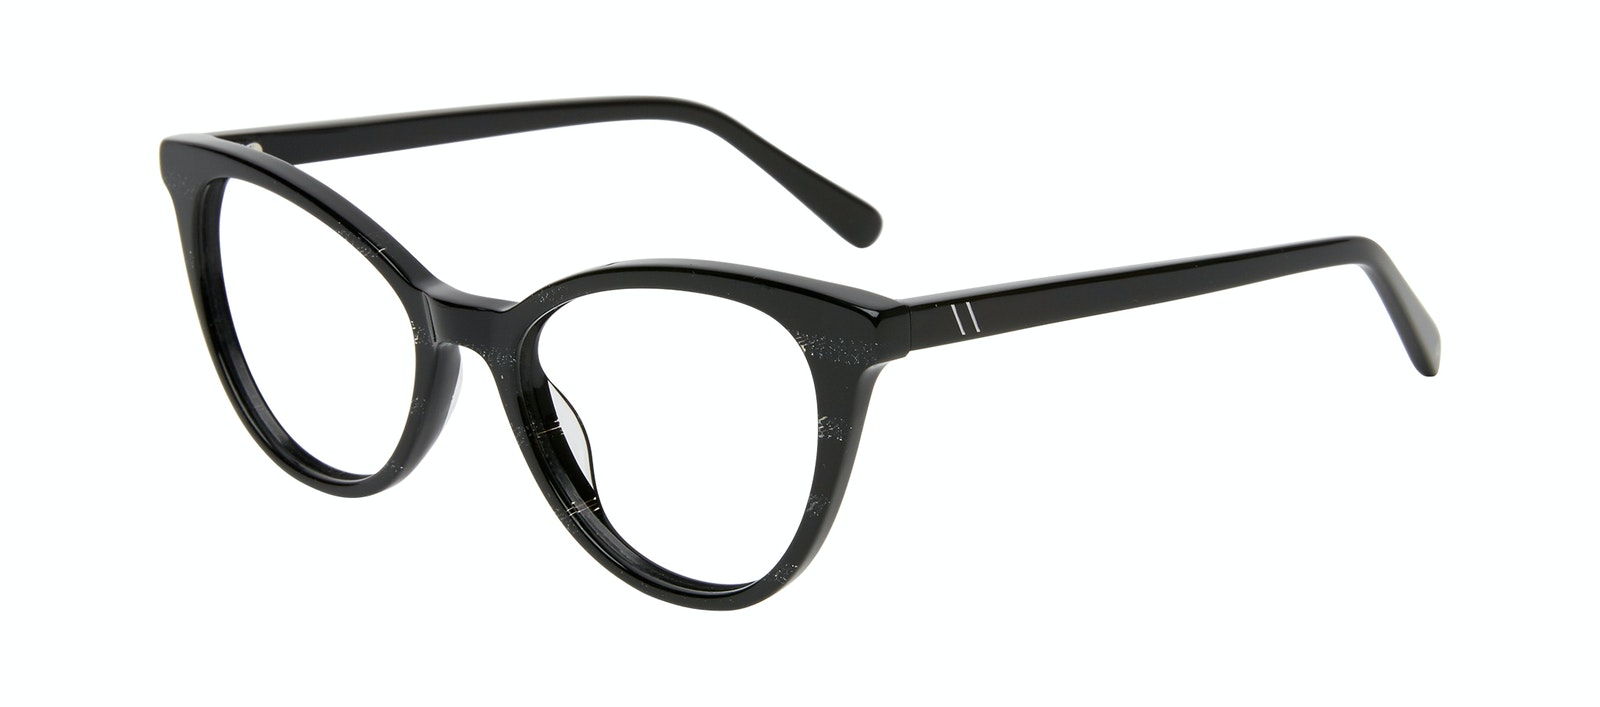 Affordable Fashion Glasses Cat Eye Eyeglasses Women Victoire Night Tilt